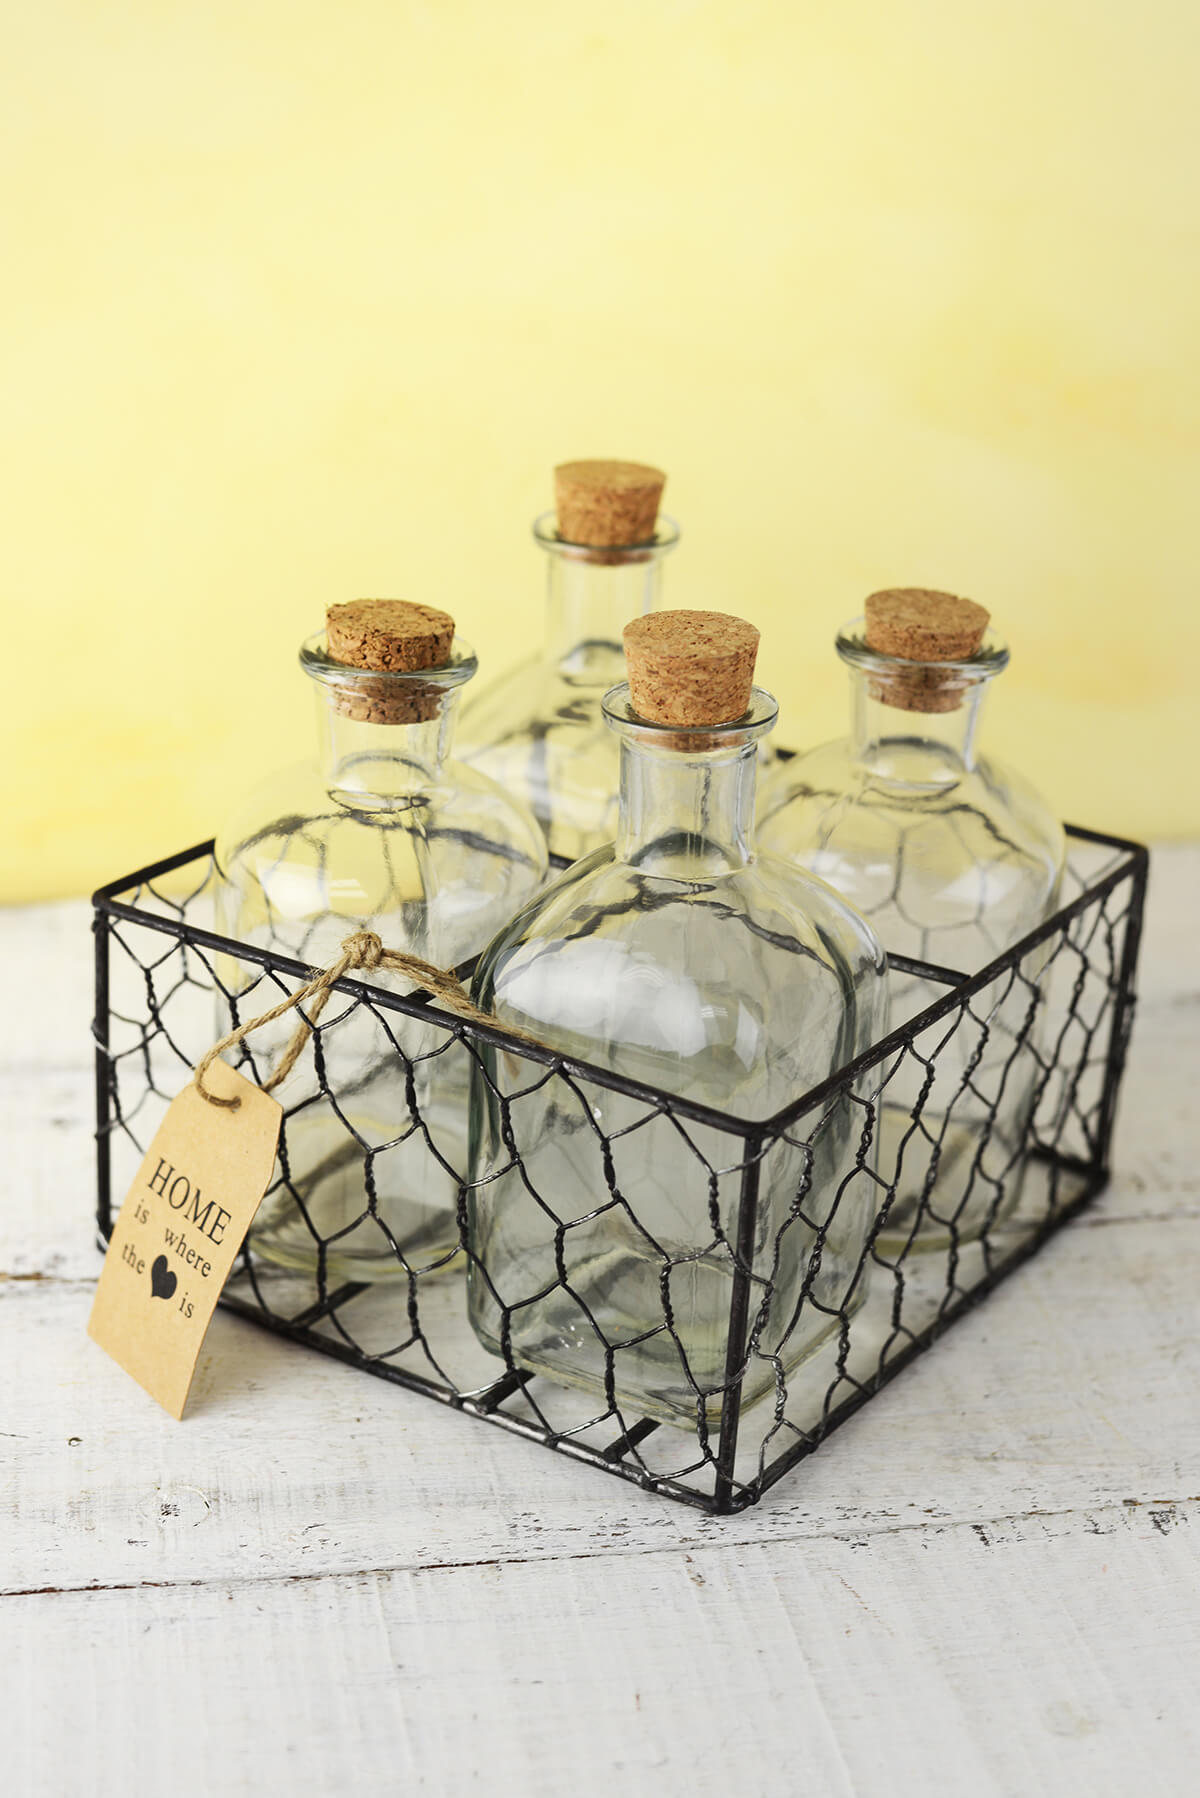 Four Glass Bottles in Chicken Wire Basket